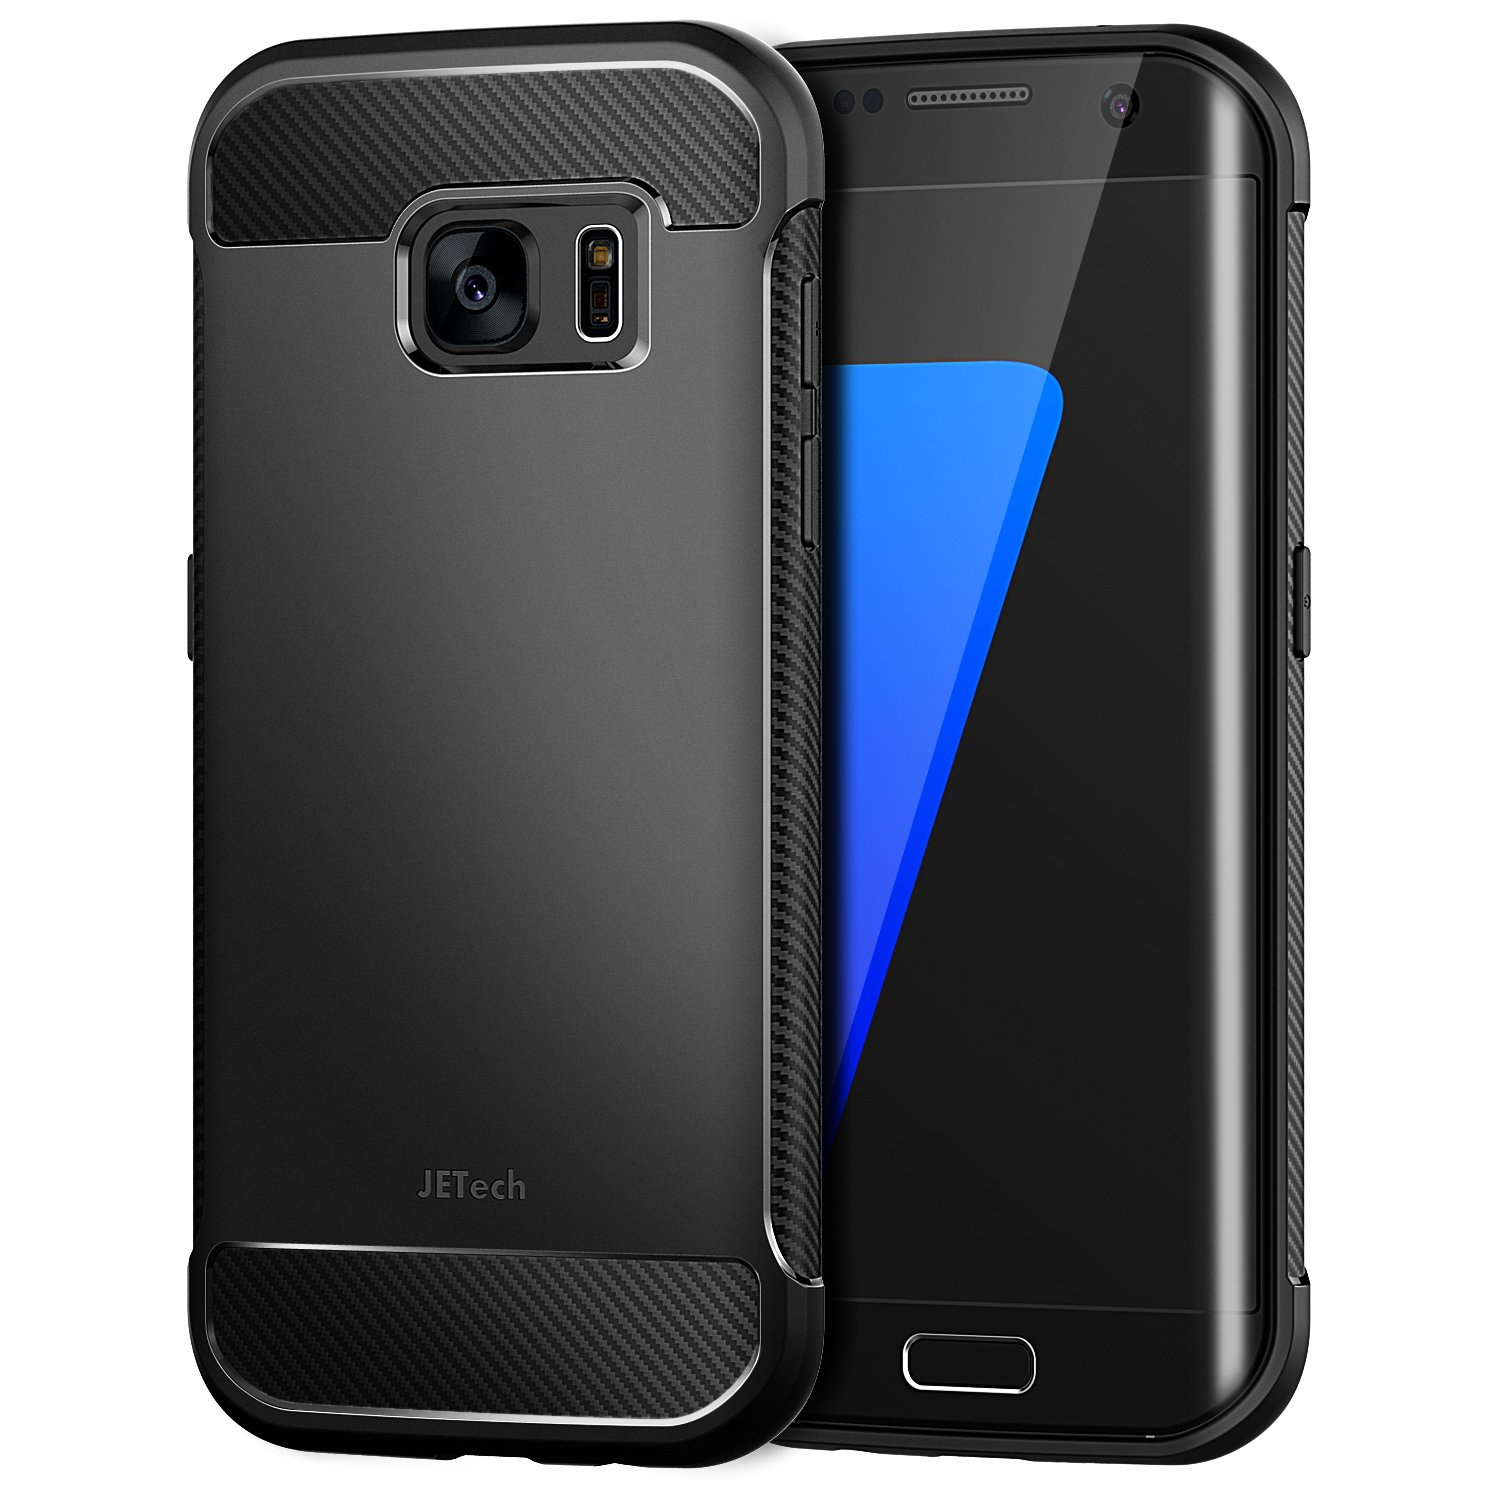 JETech Case for Samsung Galaxy S7 Edge with Shock-Absorption and Carbon Fiber Cover (Black) 3443-CS-S7-Edge-Armor-BK